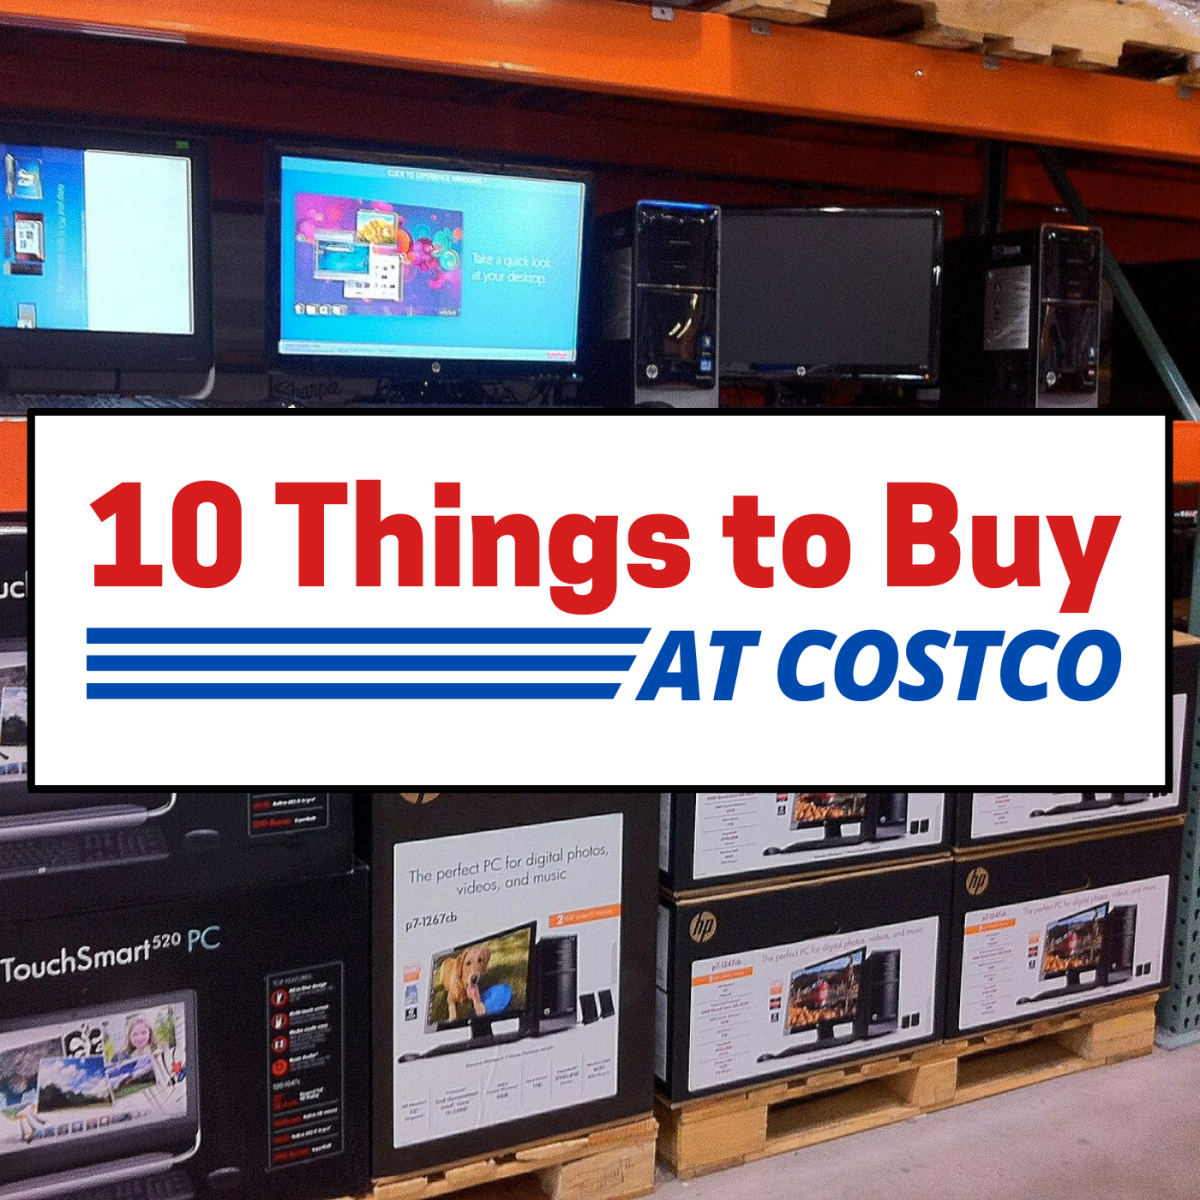 Many people shop at Costco's warehouses to save money, but which products actually offer the best deals compared to typical retailers?